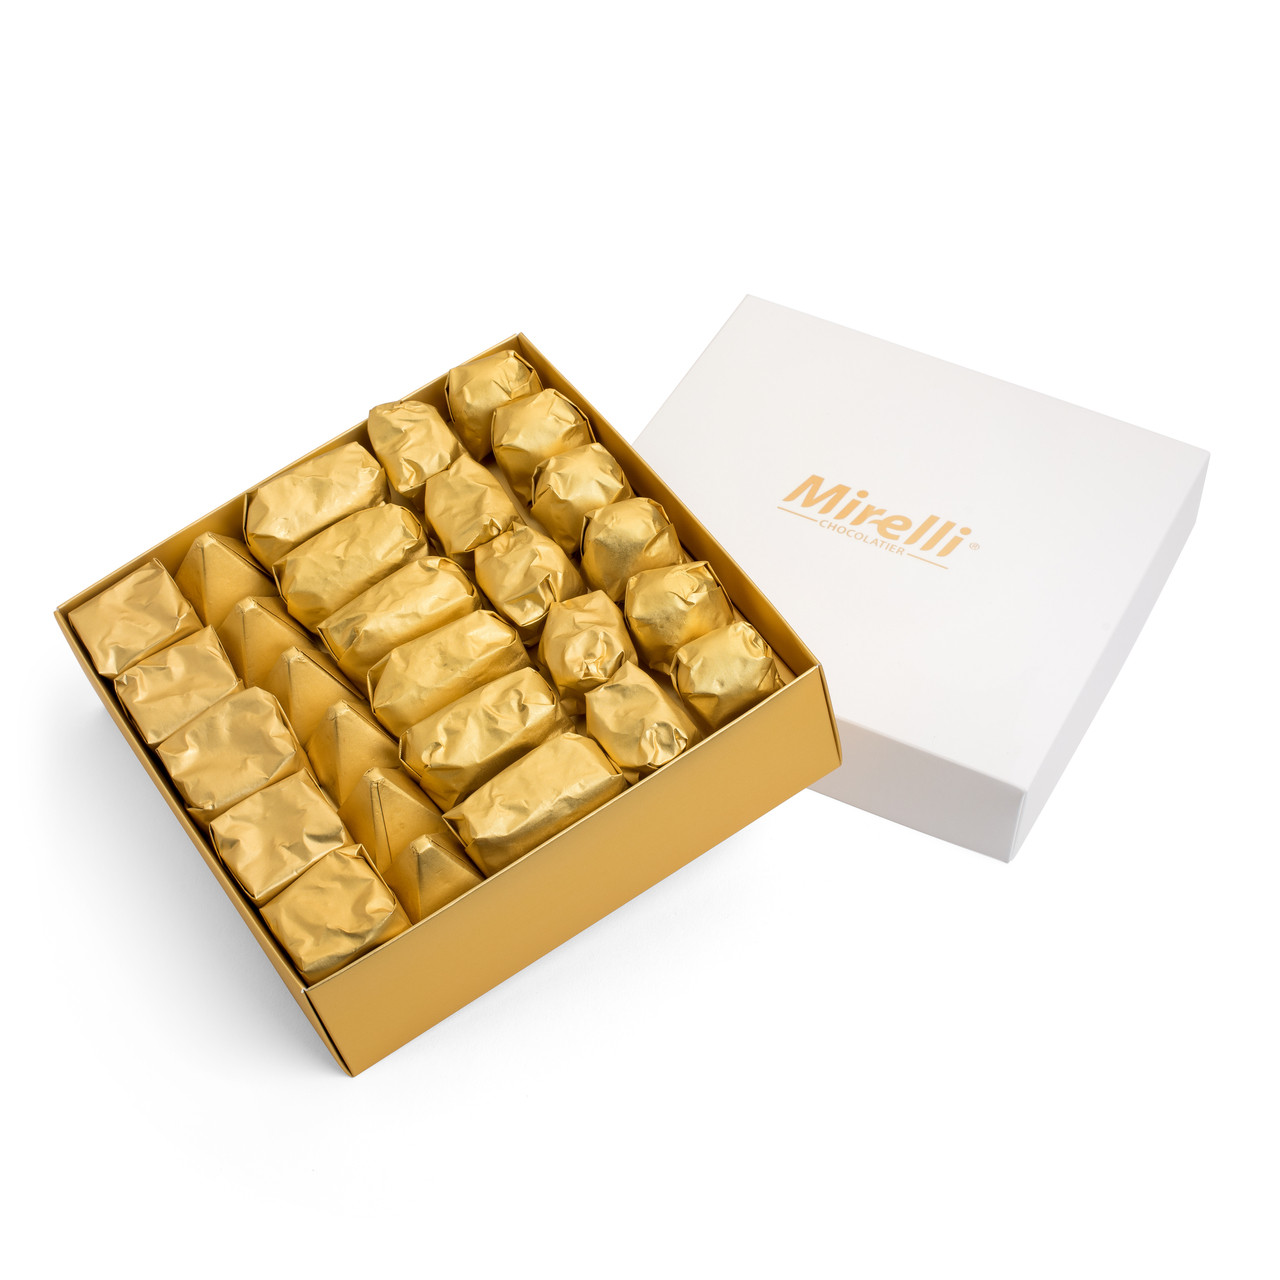 Premium Belgian Chocolate White Gift Box Gold Wrap